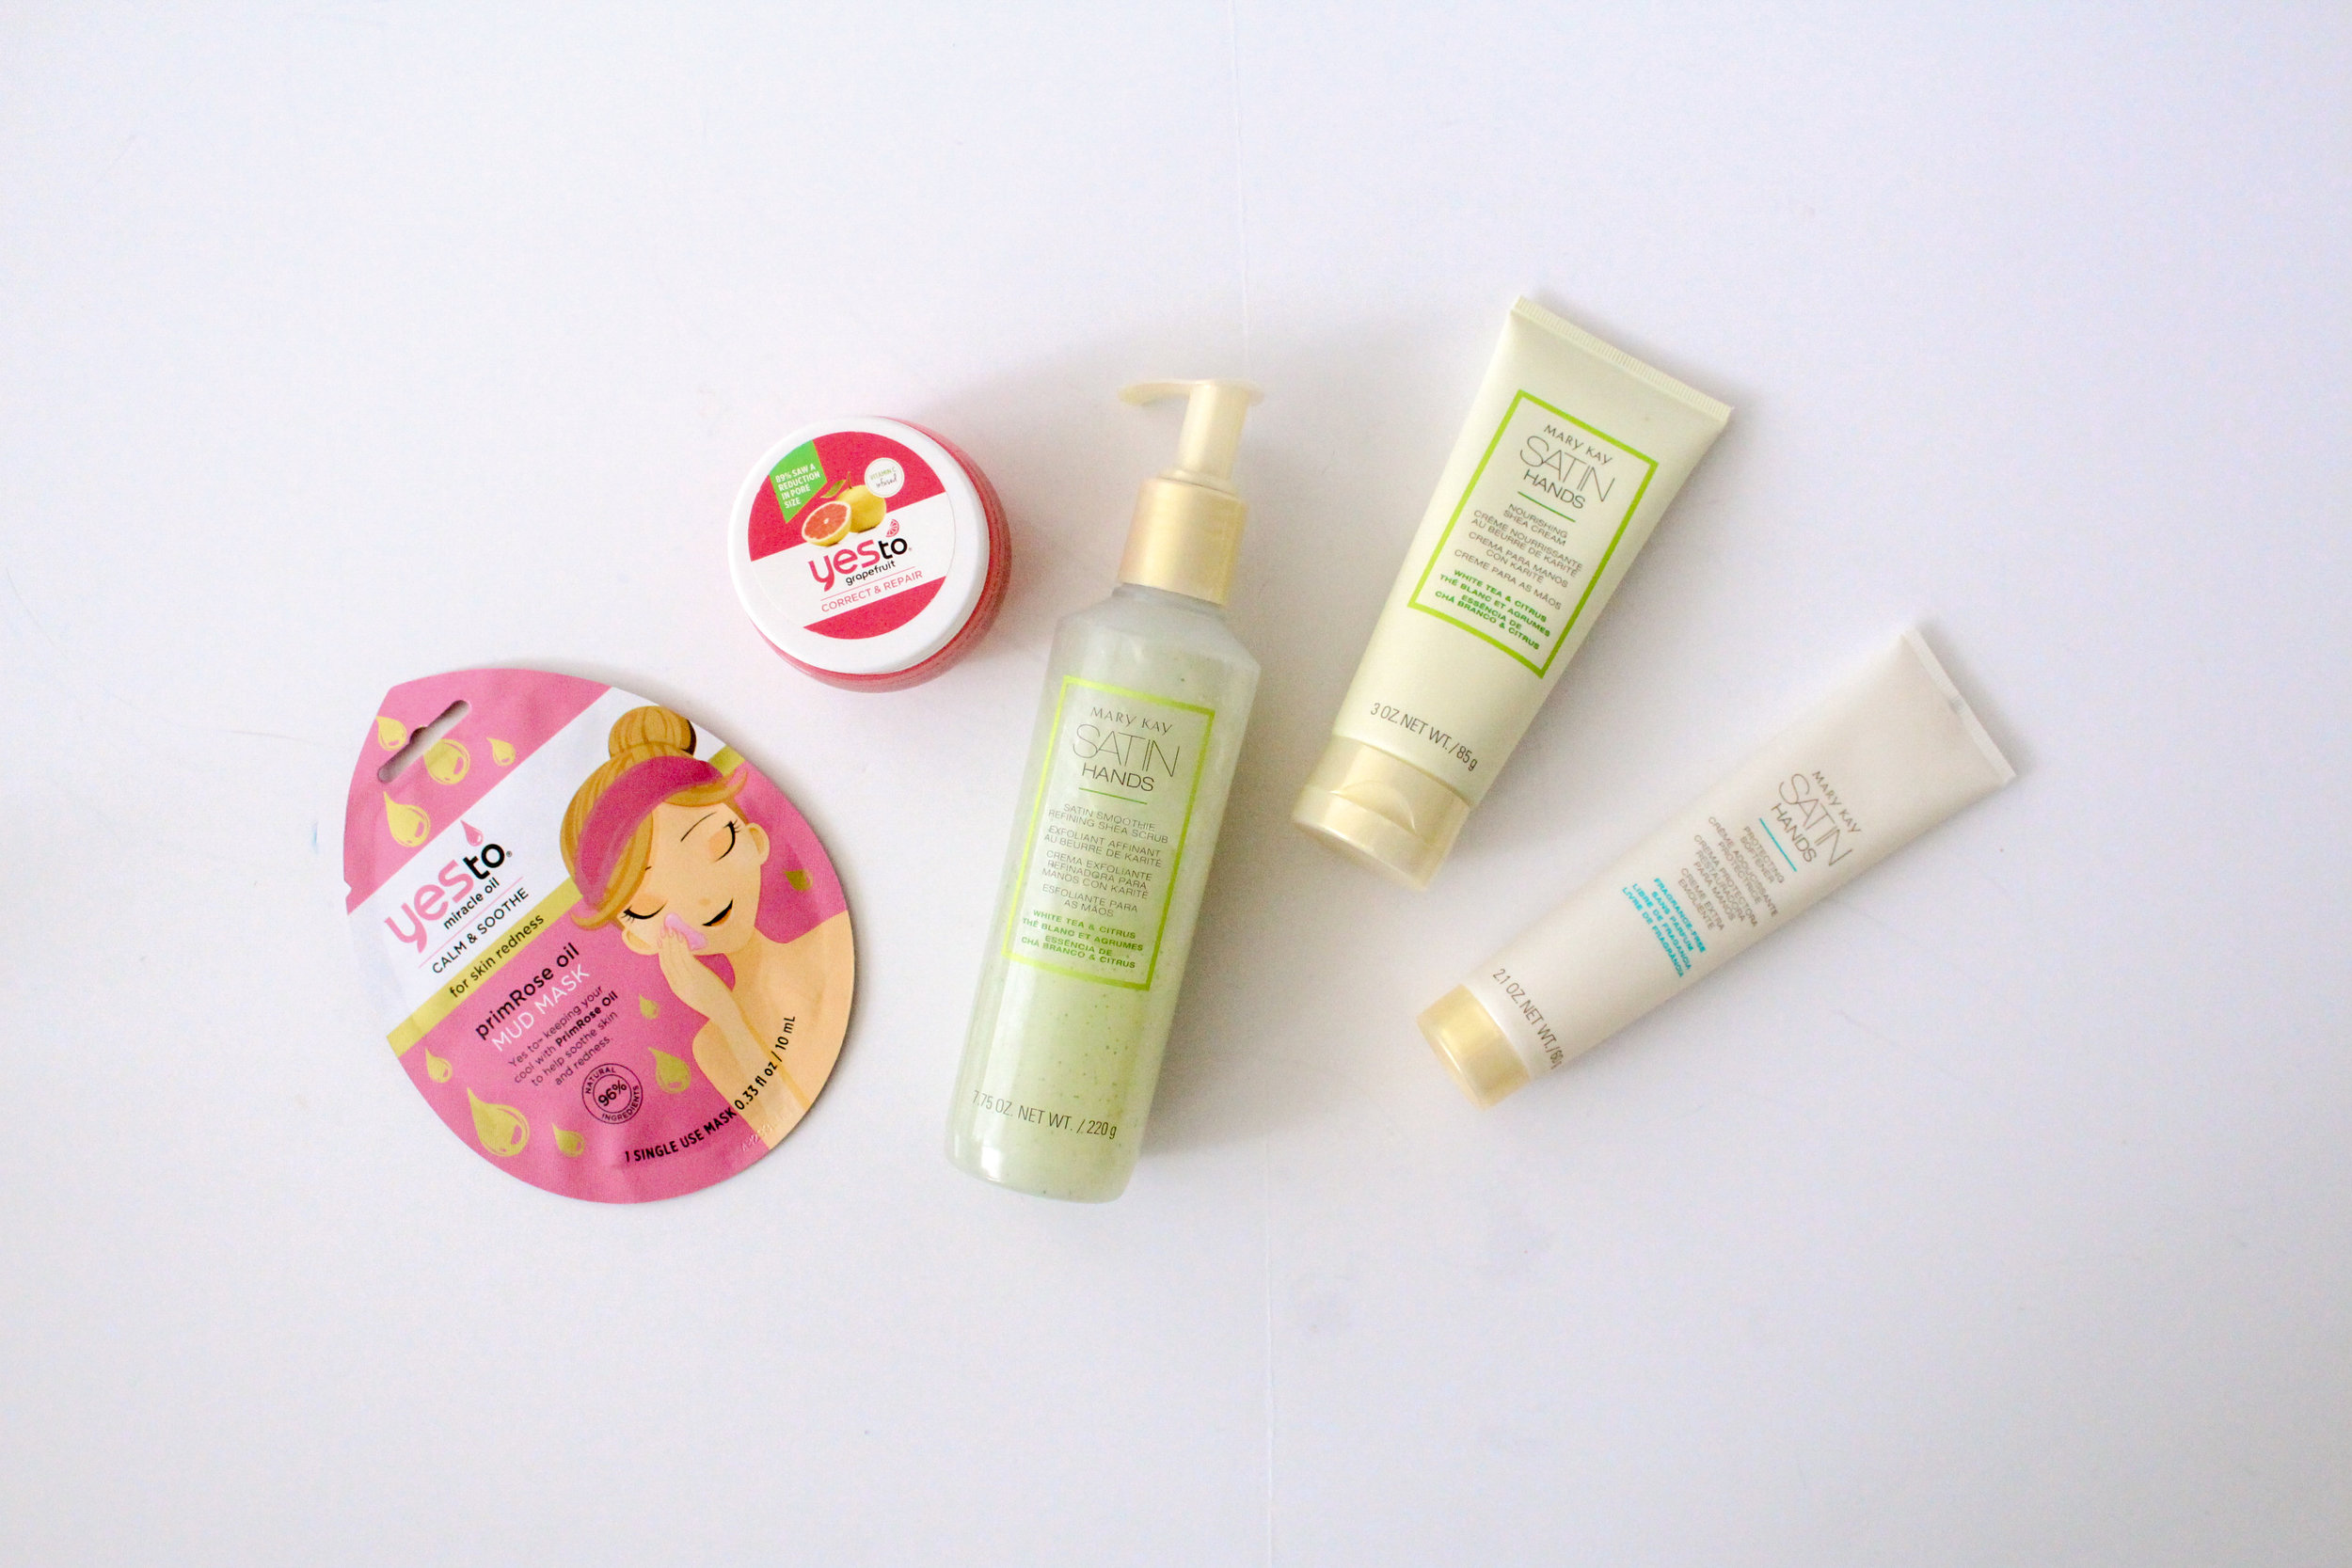 Self care kit with Yes to Primrose face masks and Mary Kay Satin Hands